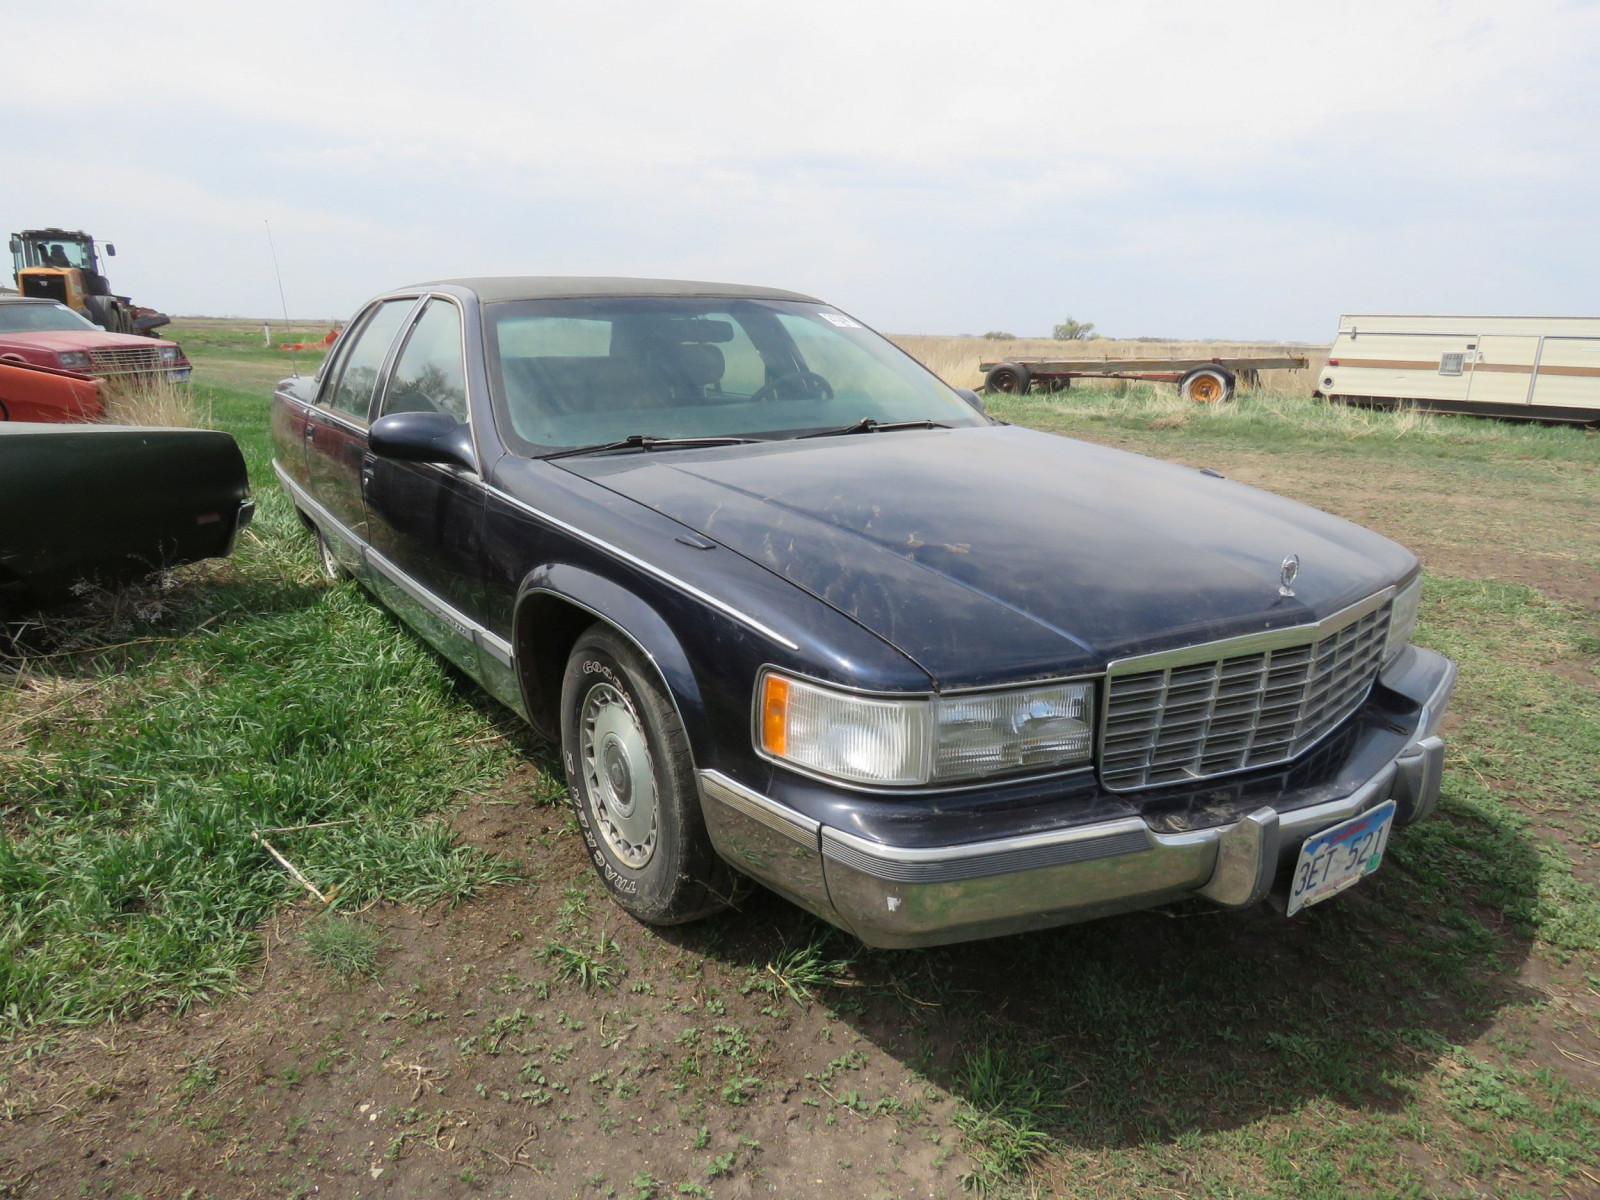 1996 Cadillac Fleetwood Brougham - Image 3